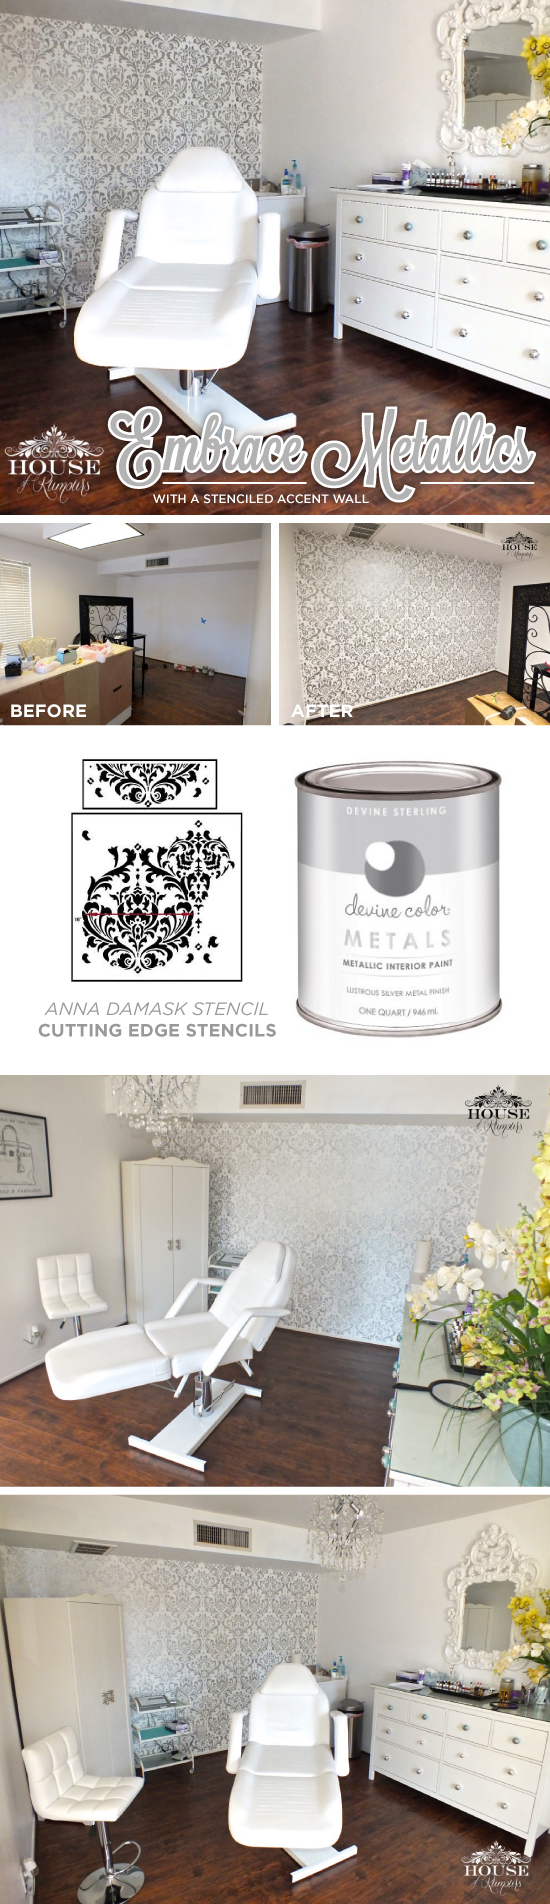 Cutting Edge Stencils shares a DIY stenciled accent wall in a salon using the Anna Damask Stencil in metallic silver and white. http://www.cuttingedgestencils.com/damask-stencil.html